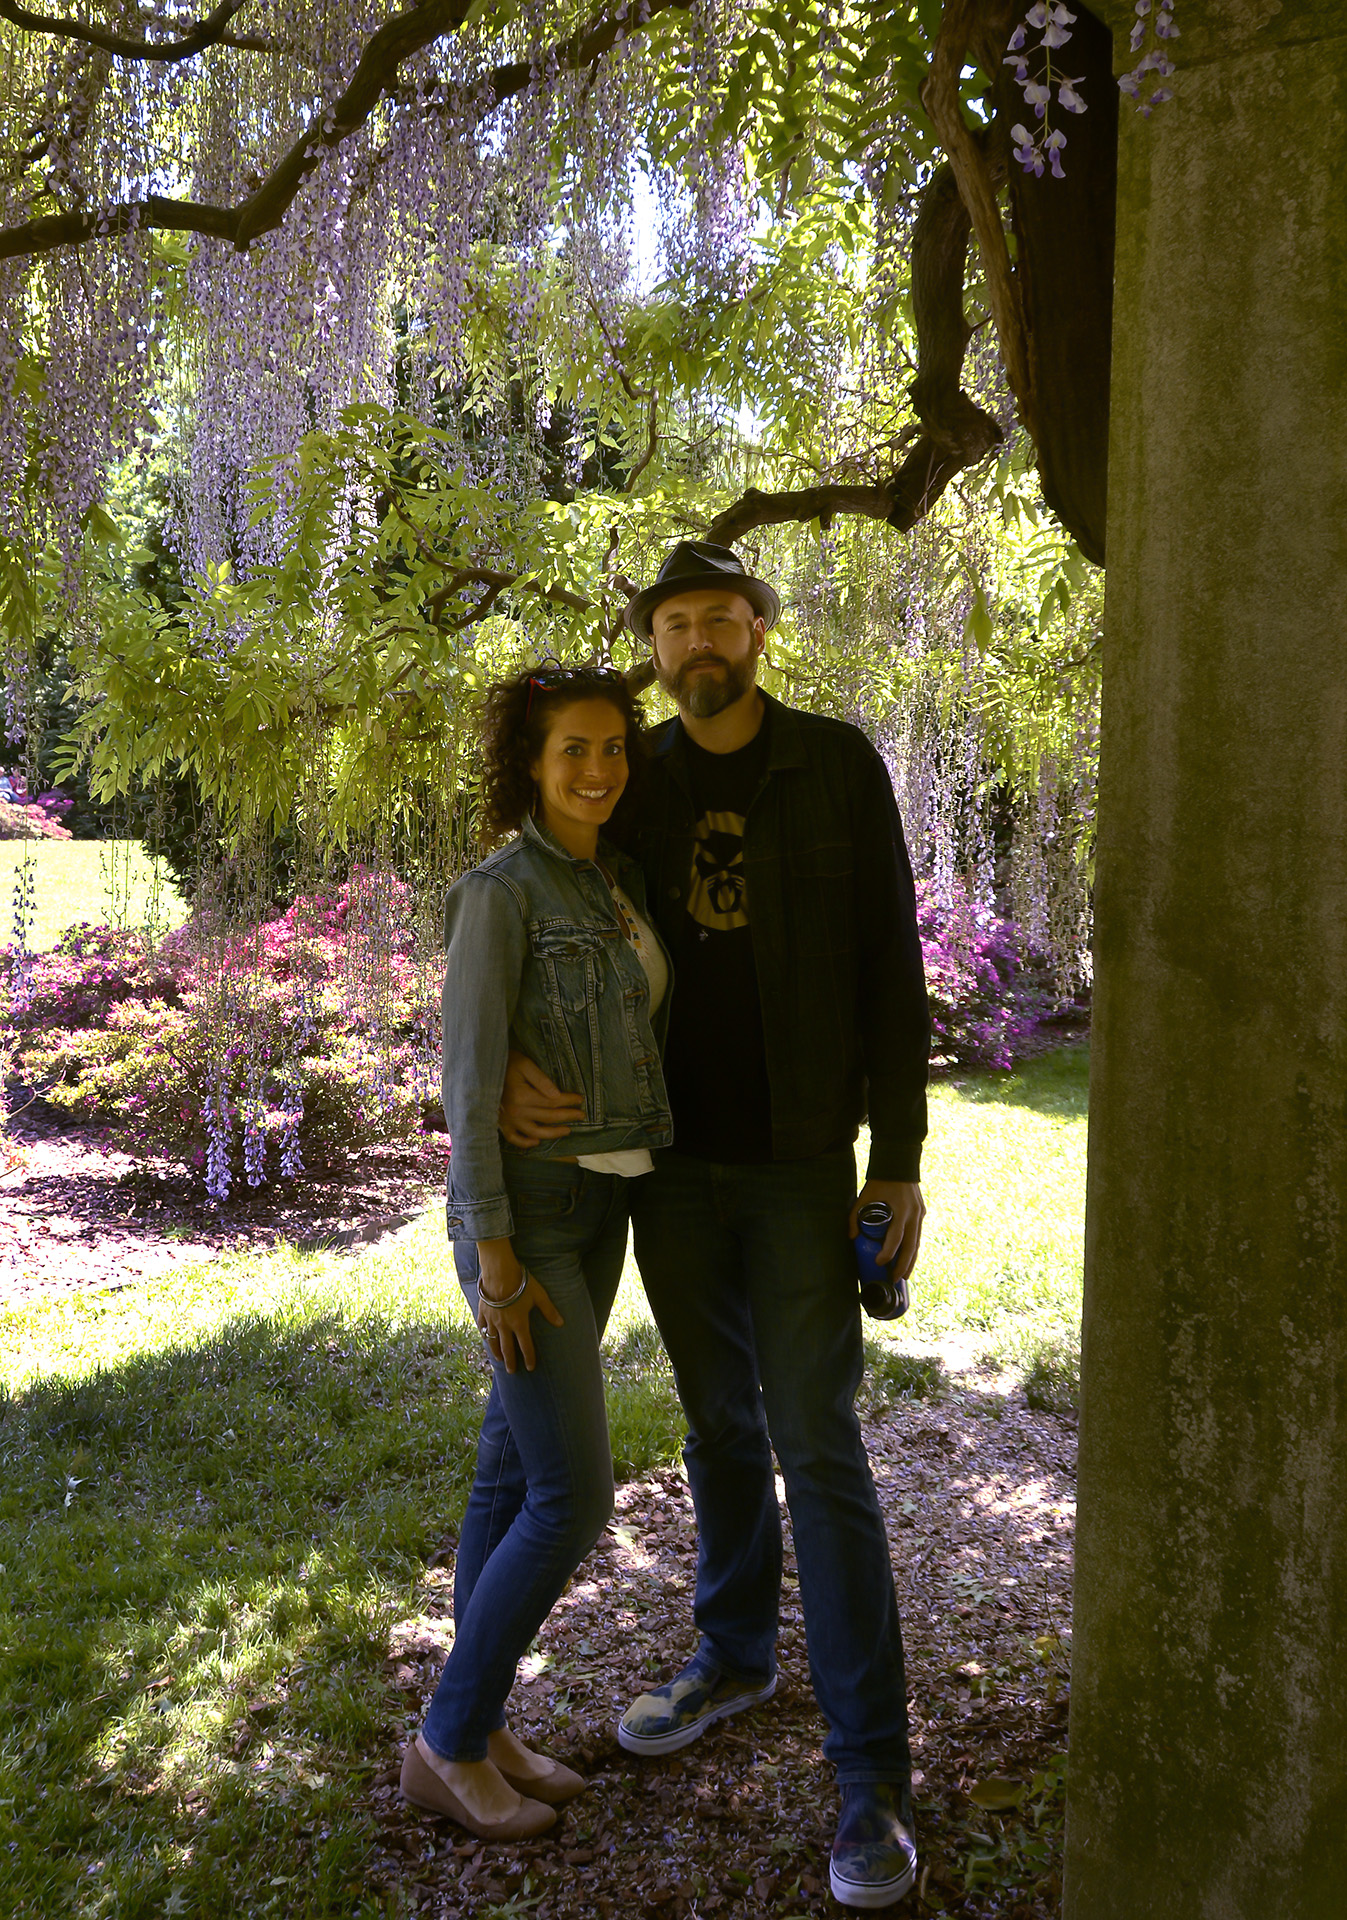 And when I'm not writing, I'm in the Brooklyn Botanic Garden with my husband